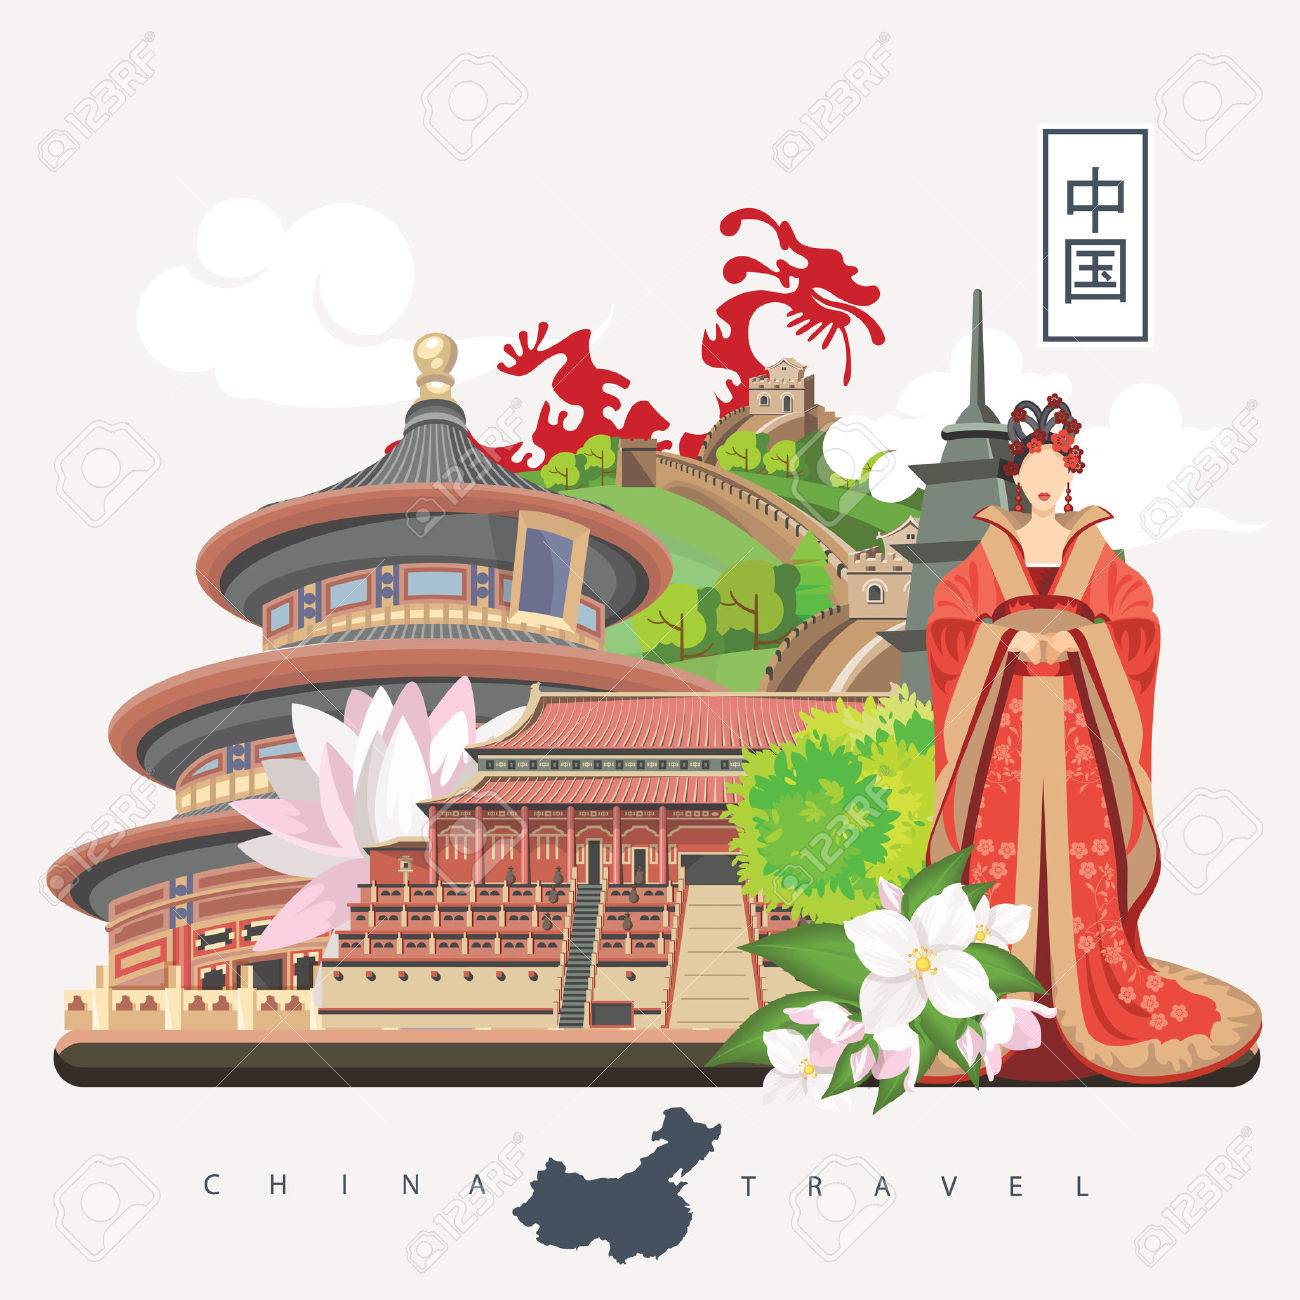 China Travel Vector Illustration Chinese Set With Architecture